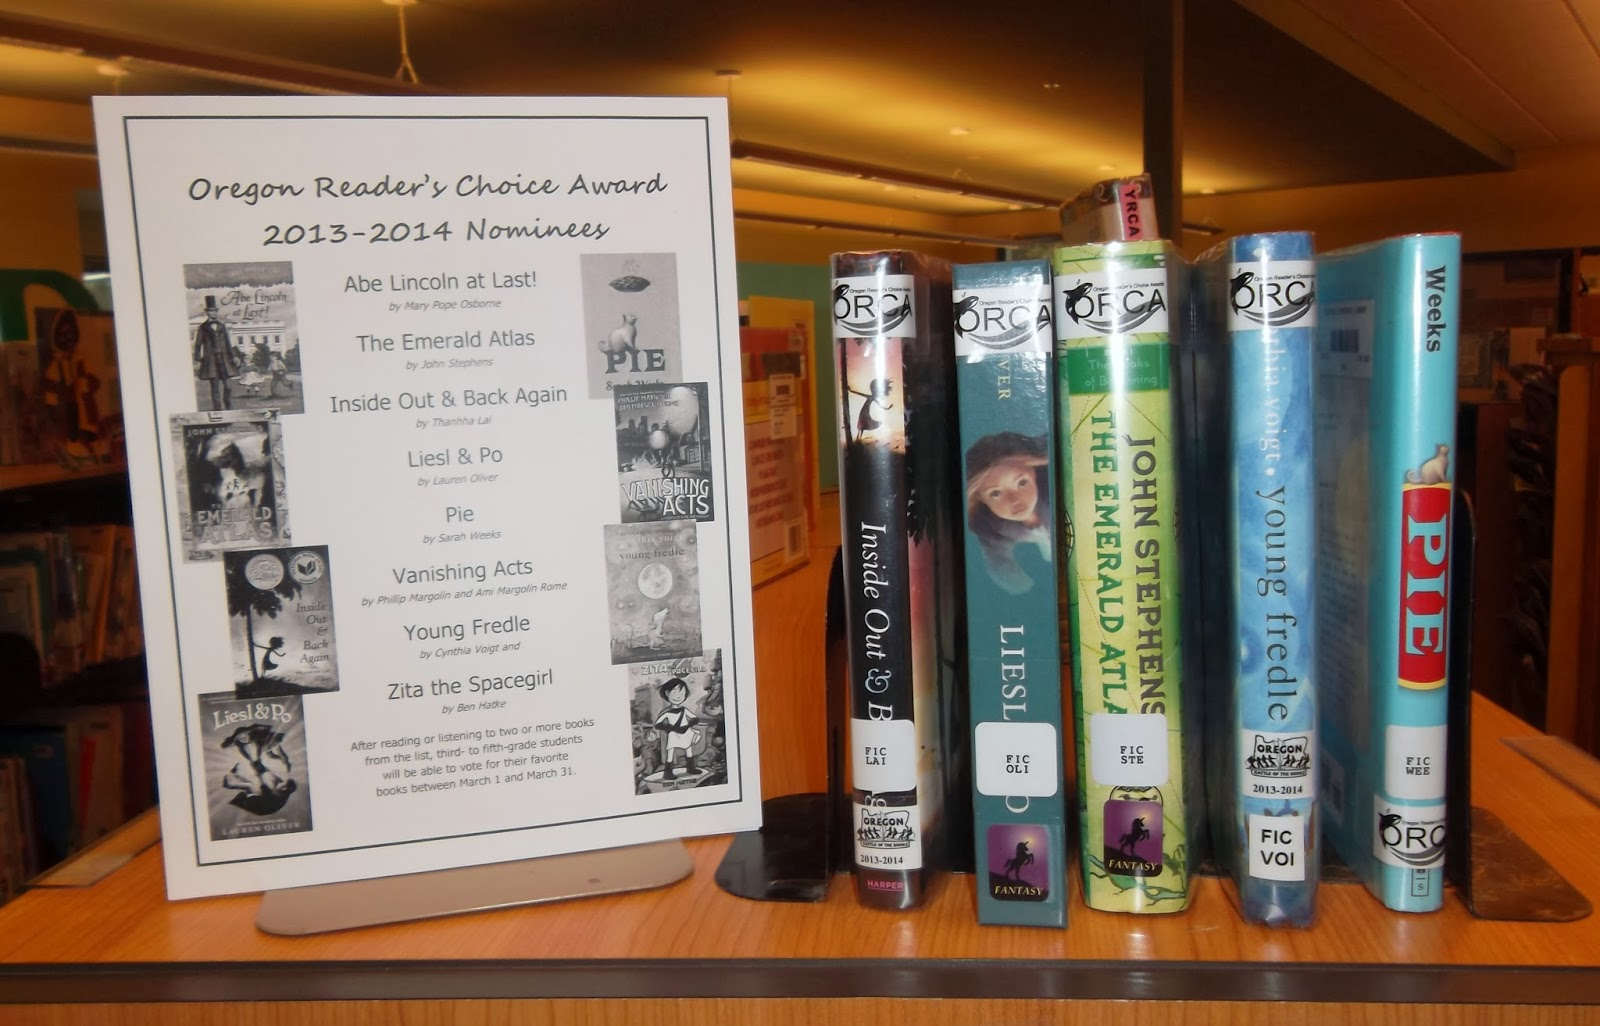 A poster held up by a bookend displays cover art and lists titles and authors for ORCA upper-elementary division nominees: Abe Lincoln at Last! by Mary Pope Osborne, The Emerald Atlas by John Stephens, Inside Out & Back Again by Thanhha Lai, Liesl & Po by Lauren Oliver, Pie by Sarah Weeks, Vanishing Acts by Phillip Margolin and Ami Margolin Rome, Young Fredle by Cynthia Voigt and Zita the Spacegirl by Ben Hatke. To the poster's right, five books -- Inside Out & Back Again, Liesl & Po, The Emerald Atlas, Young Fredle and Pie -- are shelved between bookends. Each book has an ORCA label on its spine.